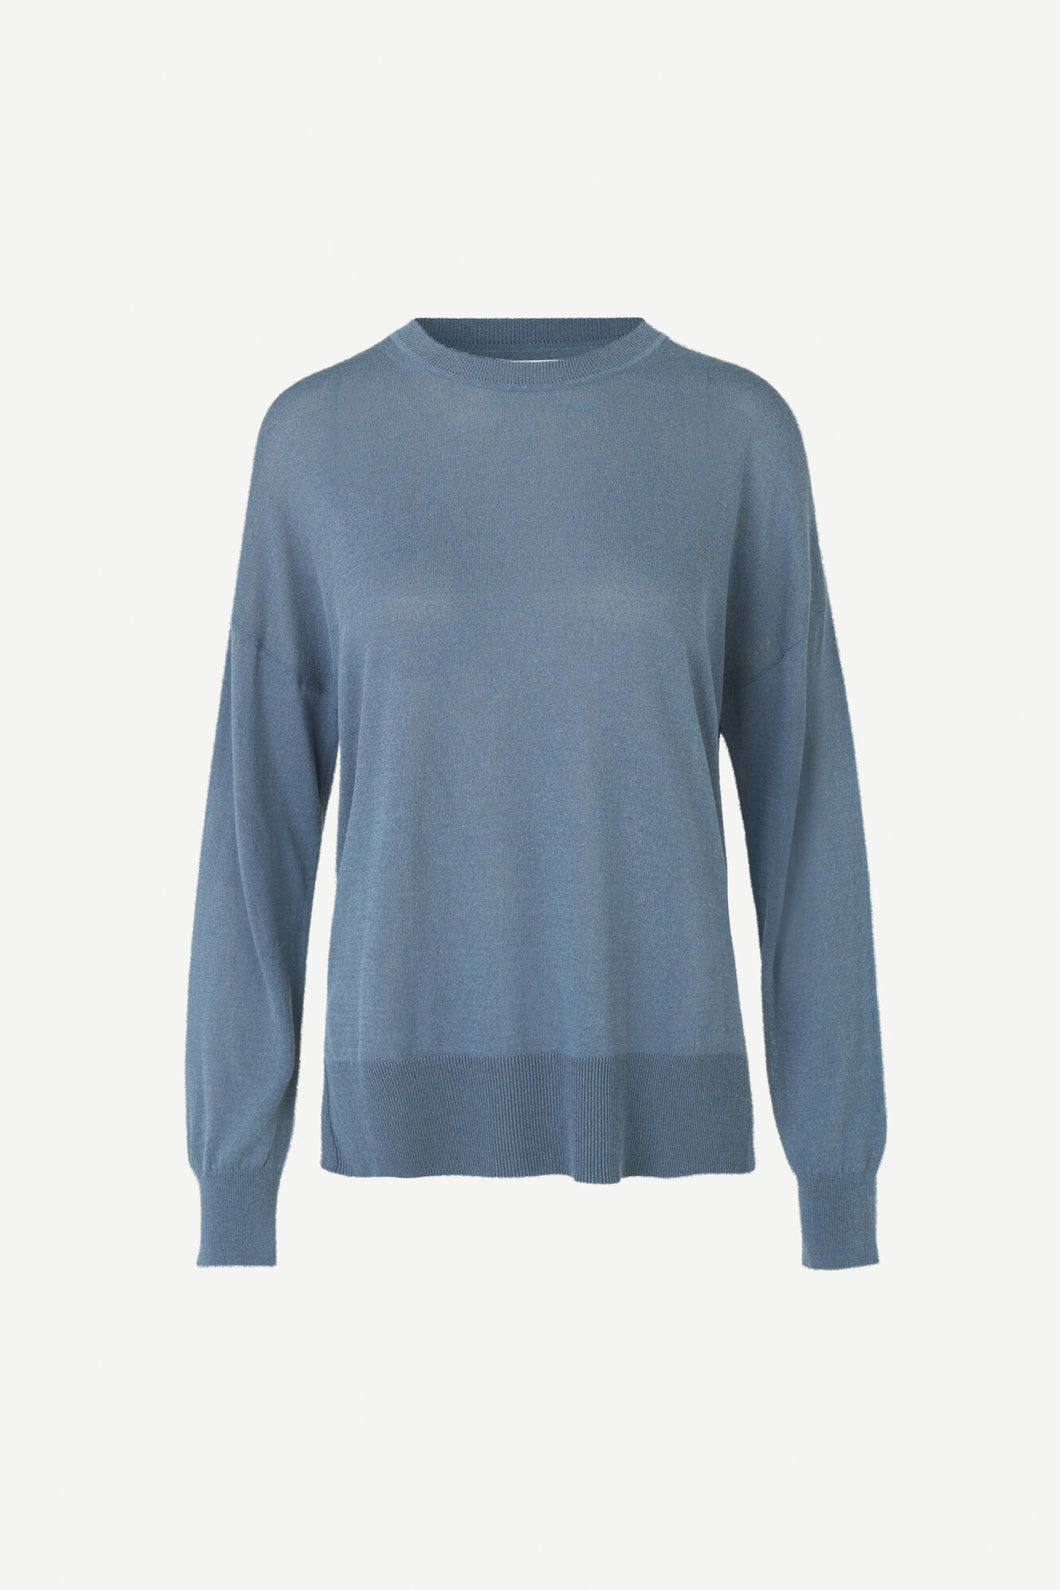 Dida crew neck 5812 blue mirage